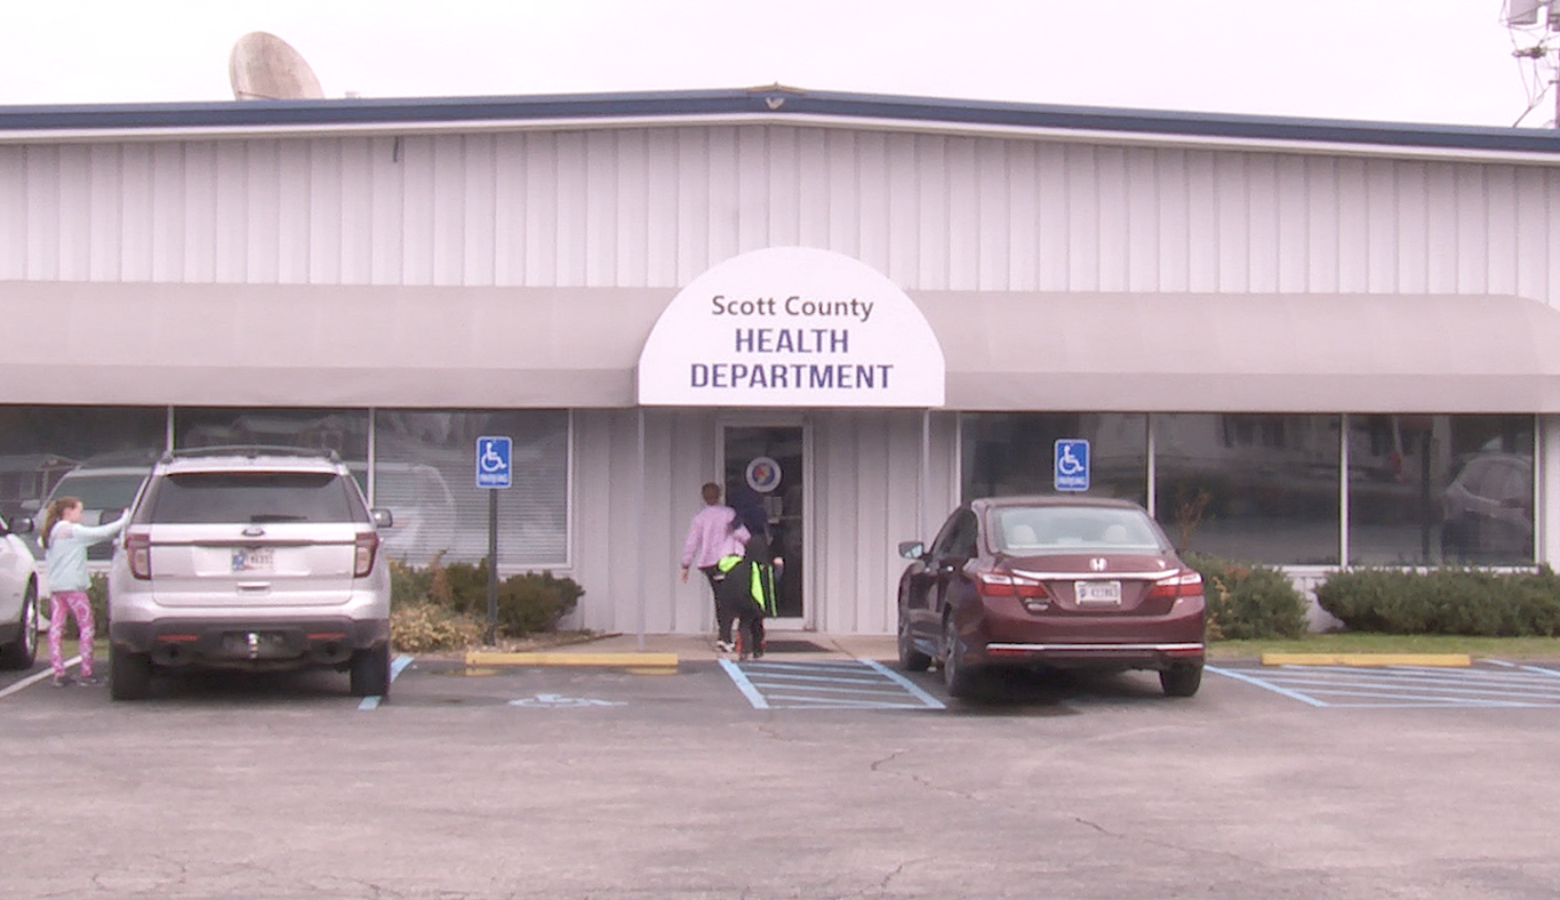 Scott County health officials say direct communication with communities has helped curb the spread of COVID-19. (FILE PHOTO: Seth Tackett/WTIU)